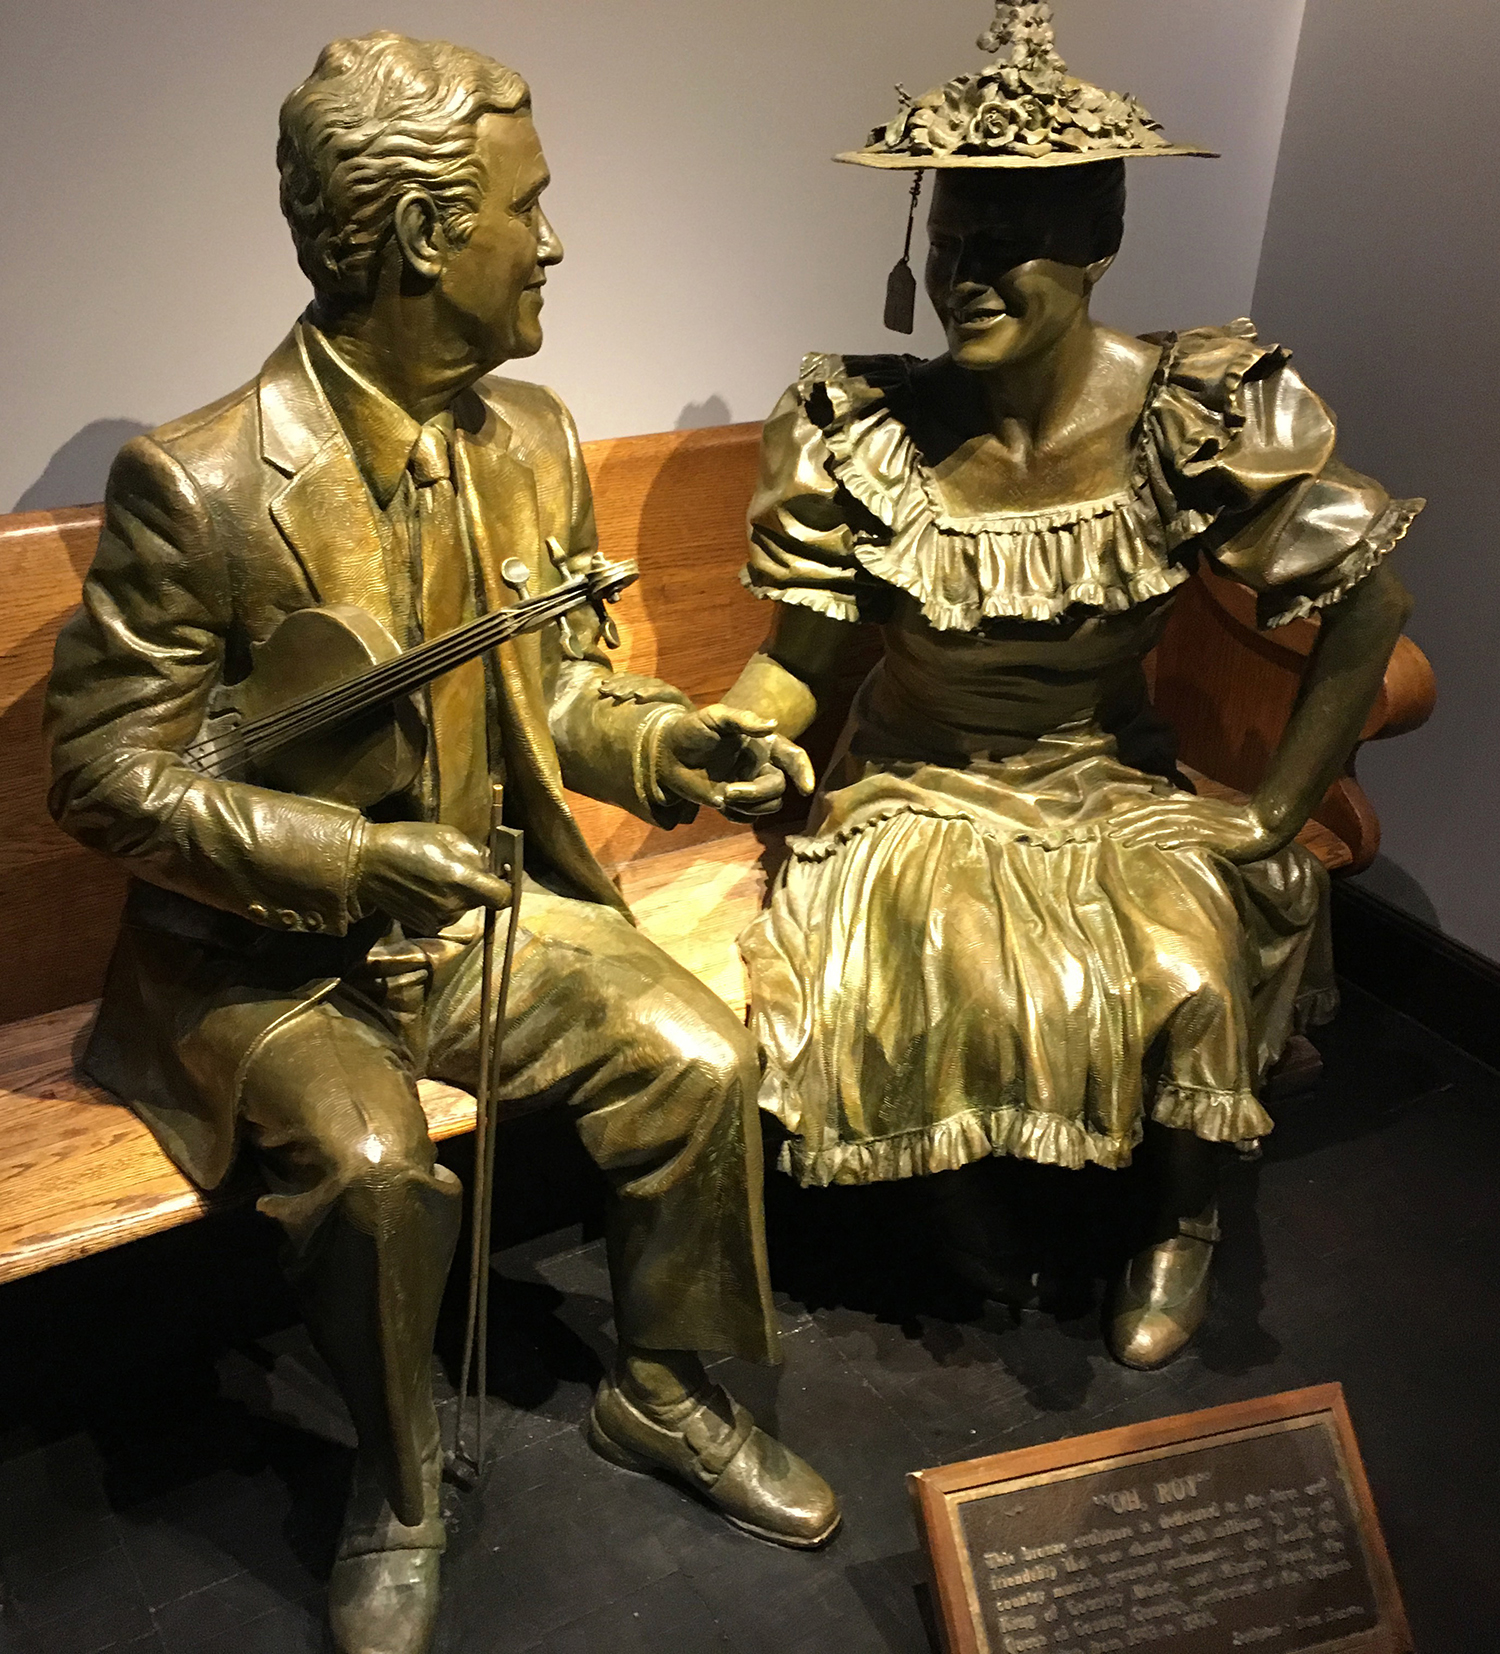 Sculpture of Roy Acuff and Minnie Pearl in the lobby of the Ryman. Our friend and colleague Sherri Warner Hunter was involved in the creation of this work.